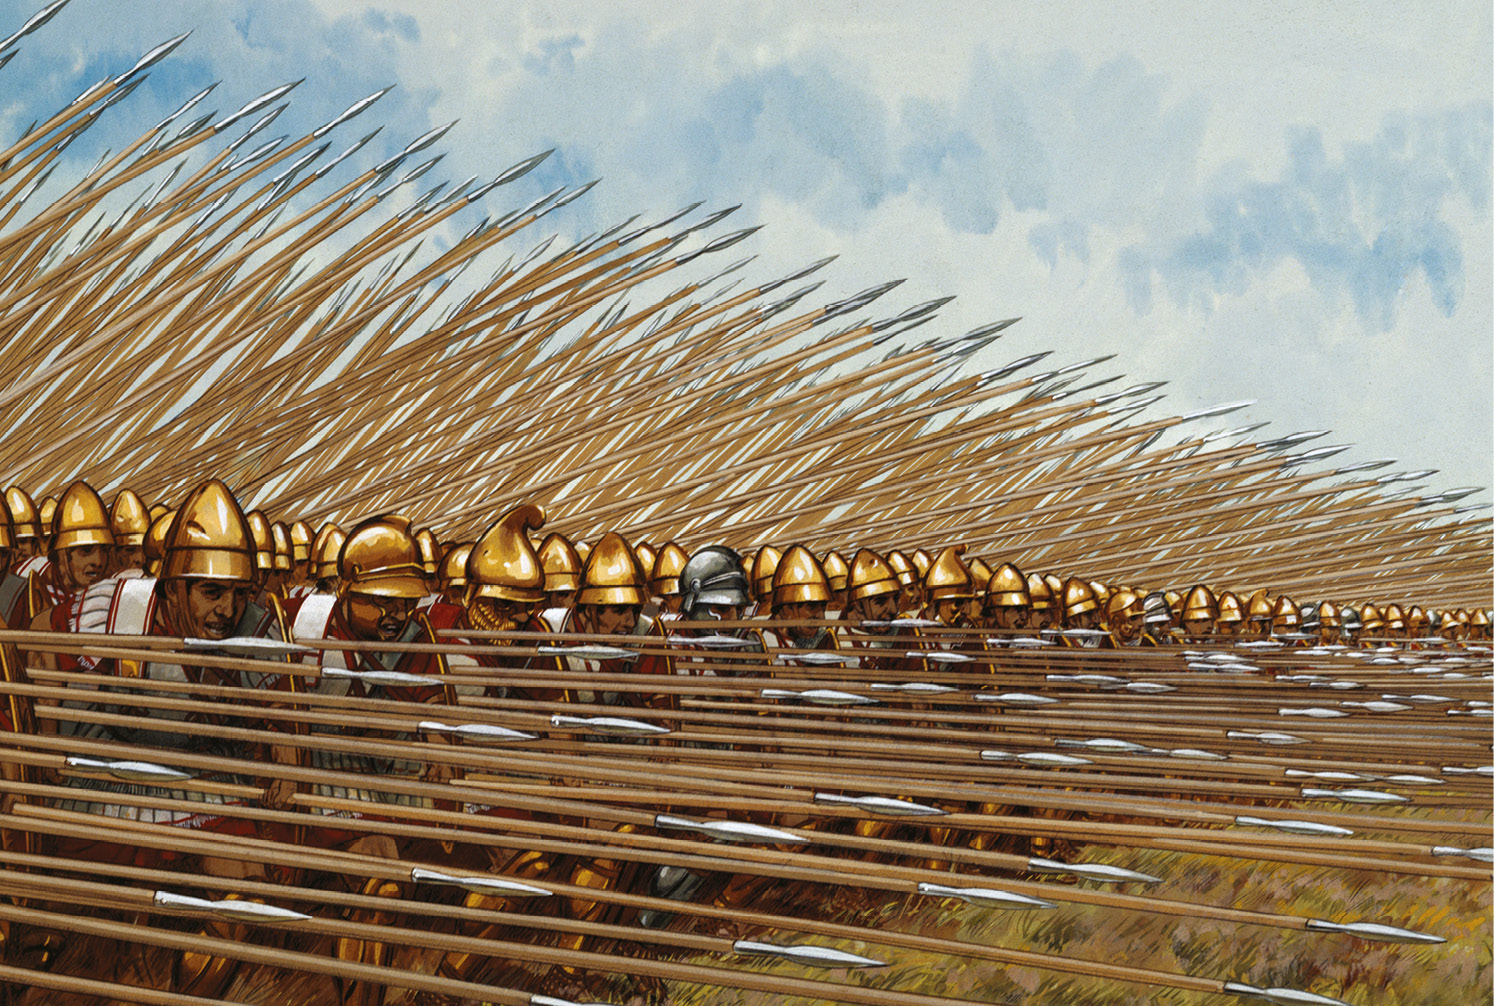 above & left These two reconstructions capture the essential character its strengths and weaknesses of the Macedonian phalanx. In frontal collision over good ground, with several rows of steel blades projecting from its front, it was liable to crush anything in its path. But it was slow, inflexible, liable to become disordered on broken ground, and highly dependent for its security on the integrity of its tight-packed formation. The legion, by contrast, was a more open, mobile, adaptable formation, one in which each man was equipped to take on an individual opponent.